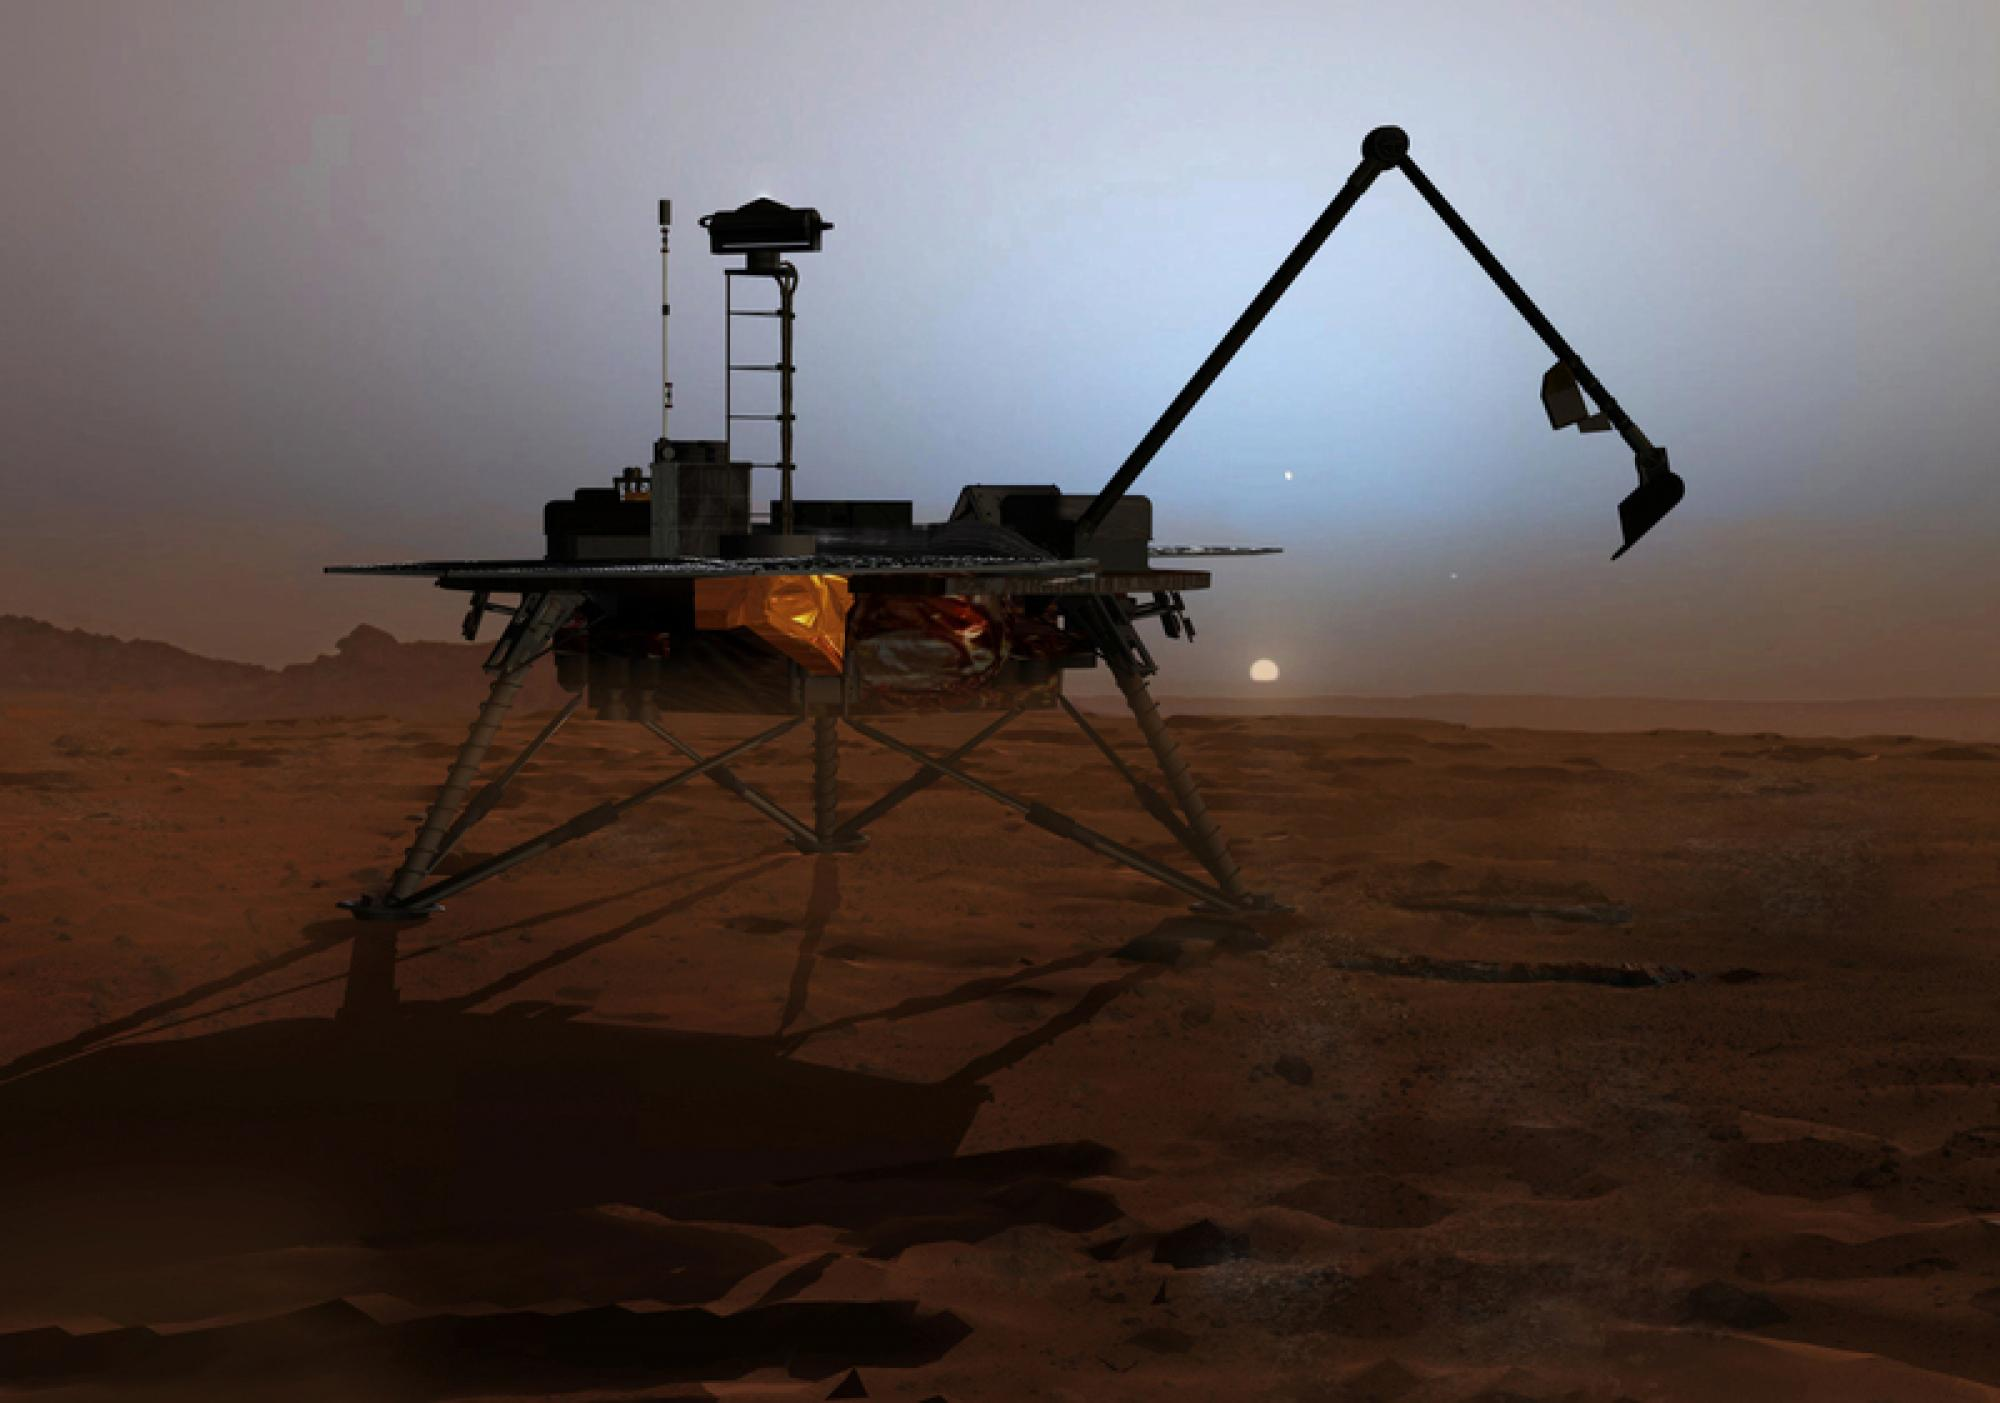 The UA conceived of and ran the Phoenix mission, which landed near the north pole of Mars in May 2008. It is the first Mars mission ever led by a university.